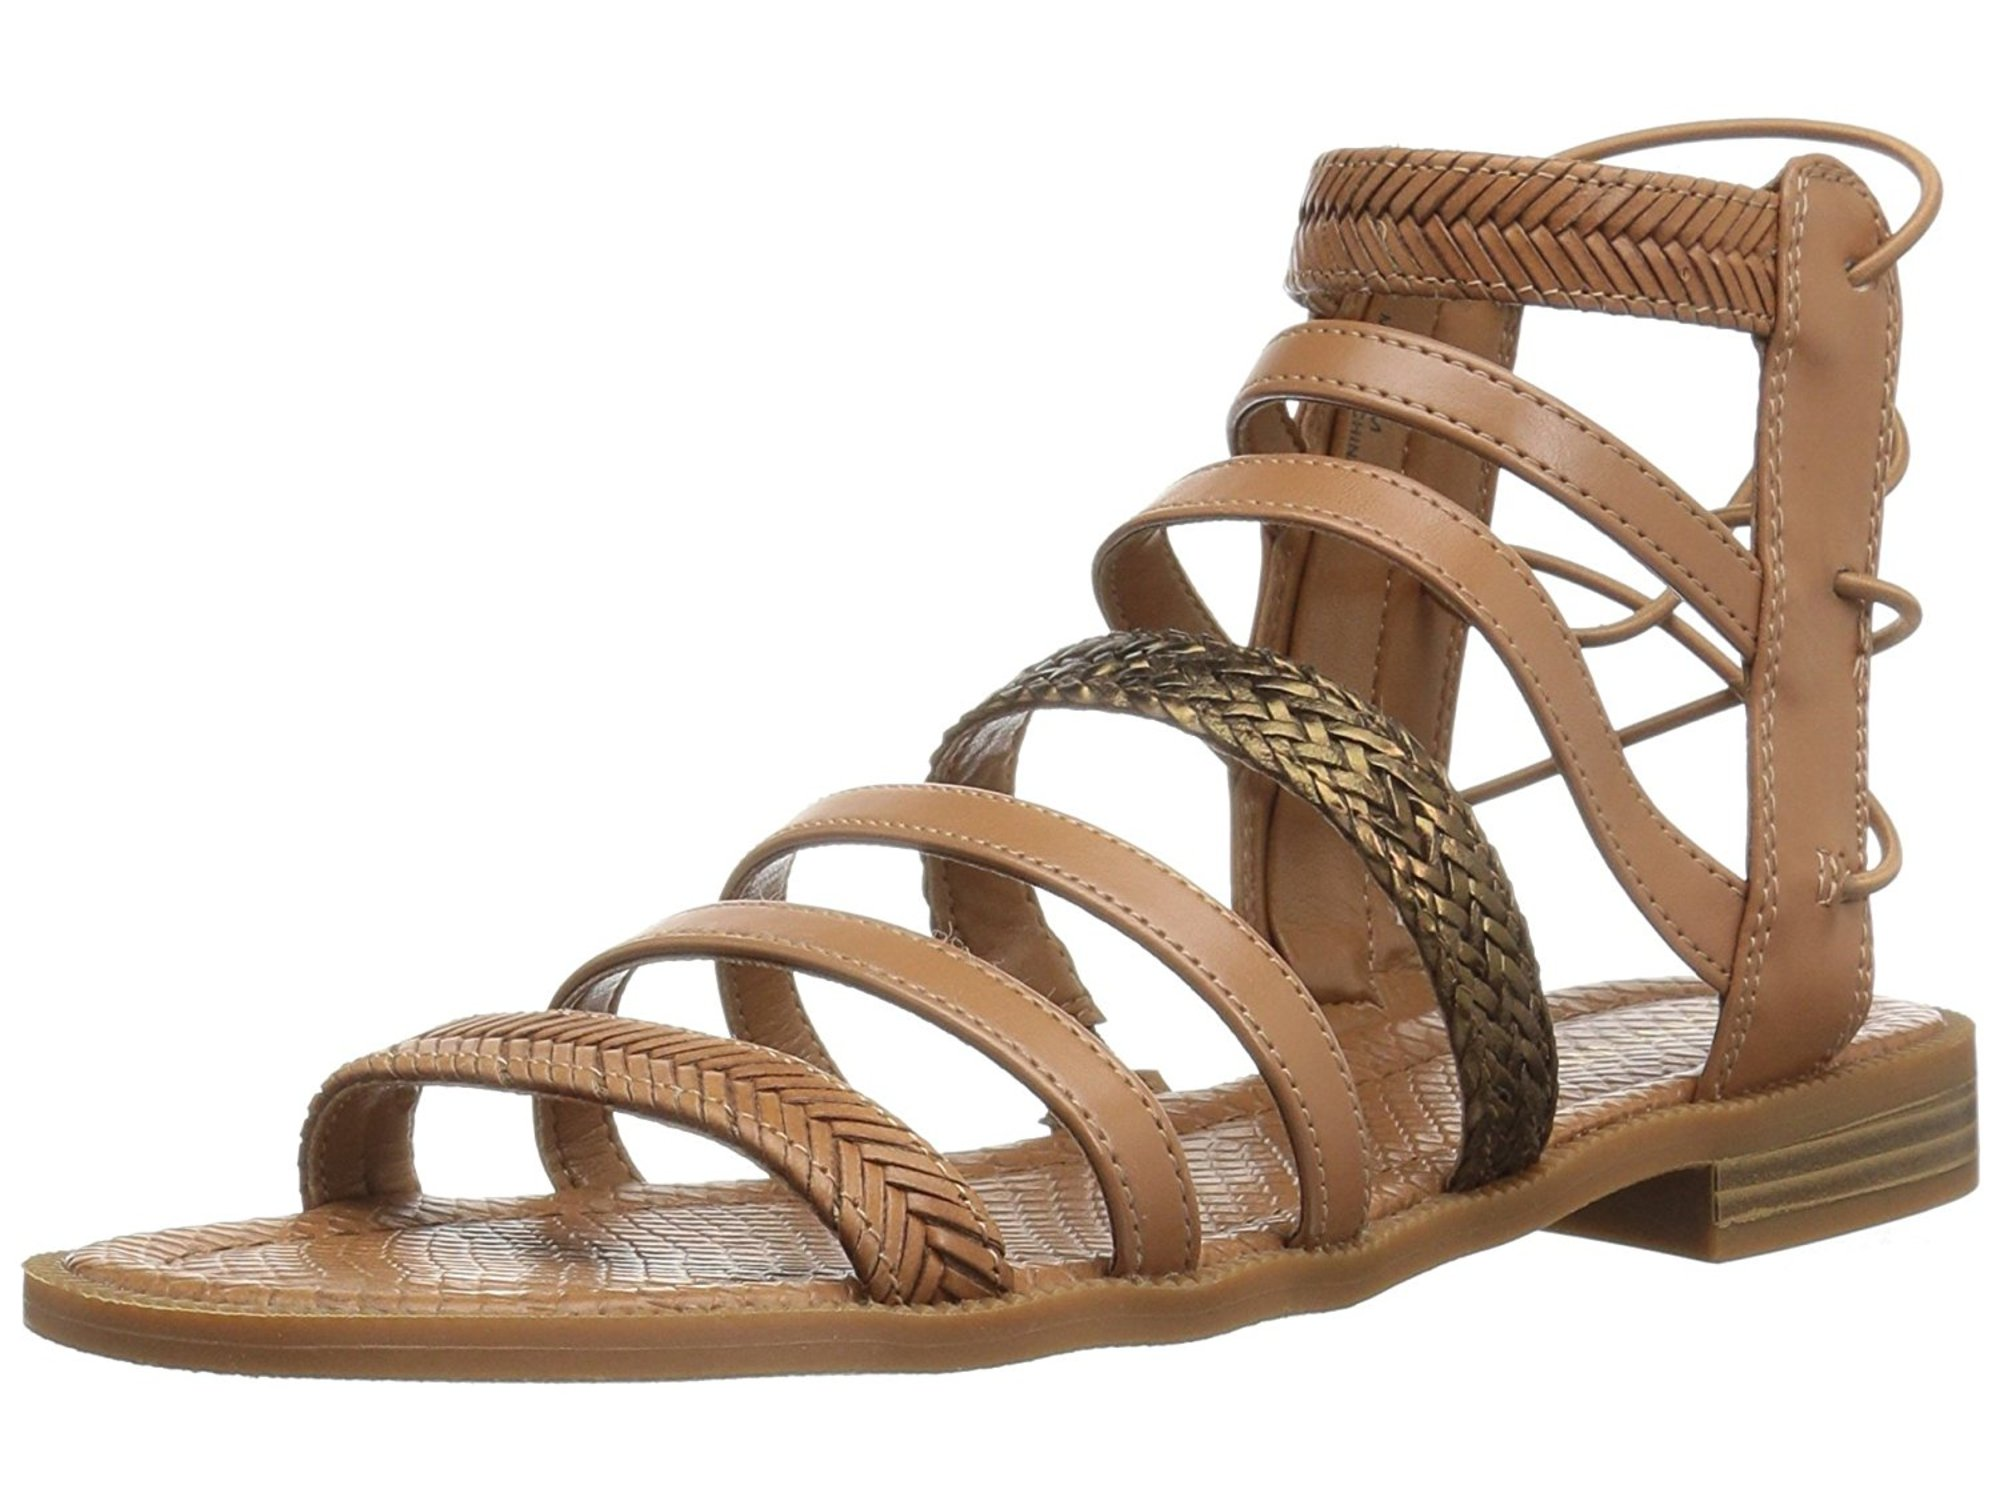 ec7fd231a46 Nine West Womens Xema Open Toe Casual Strappy Sandals